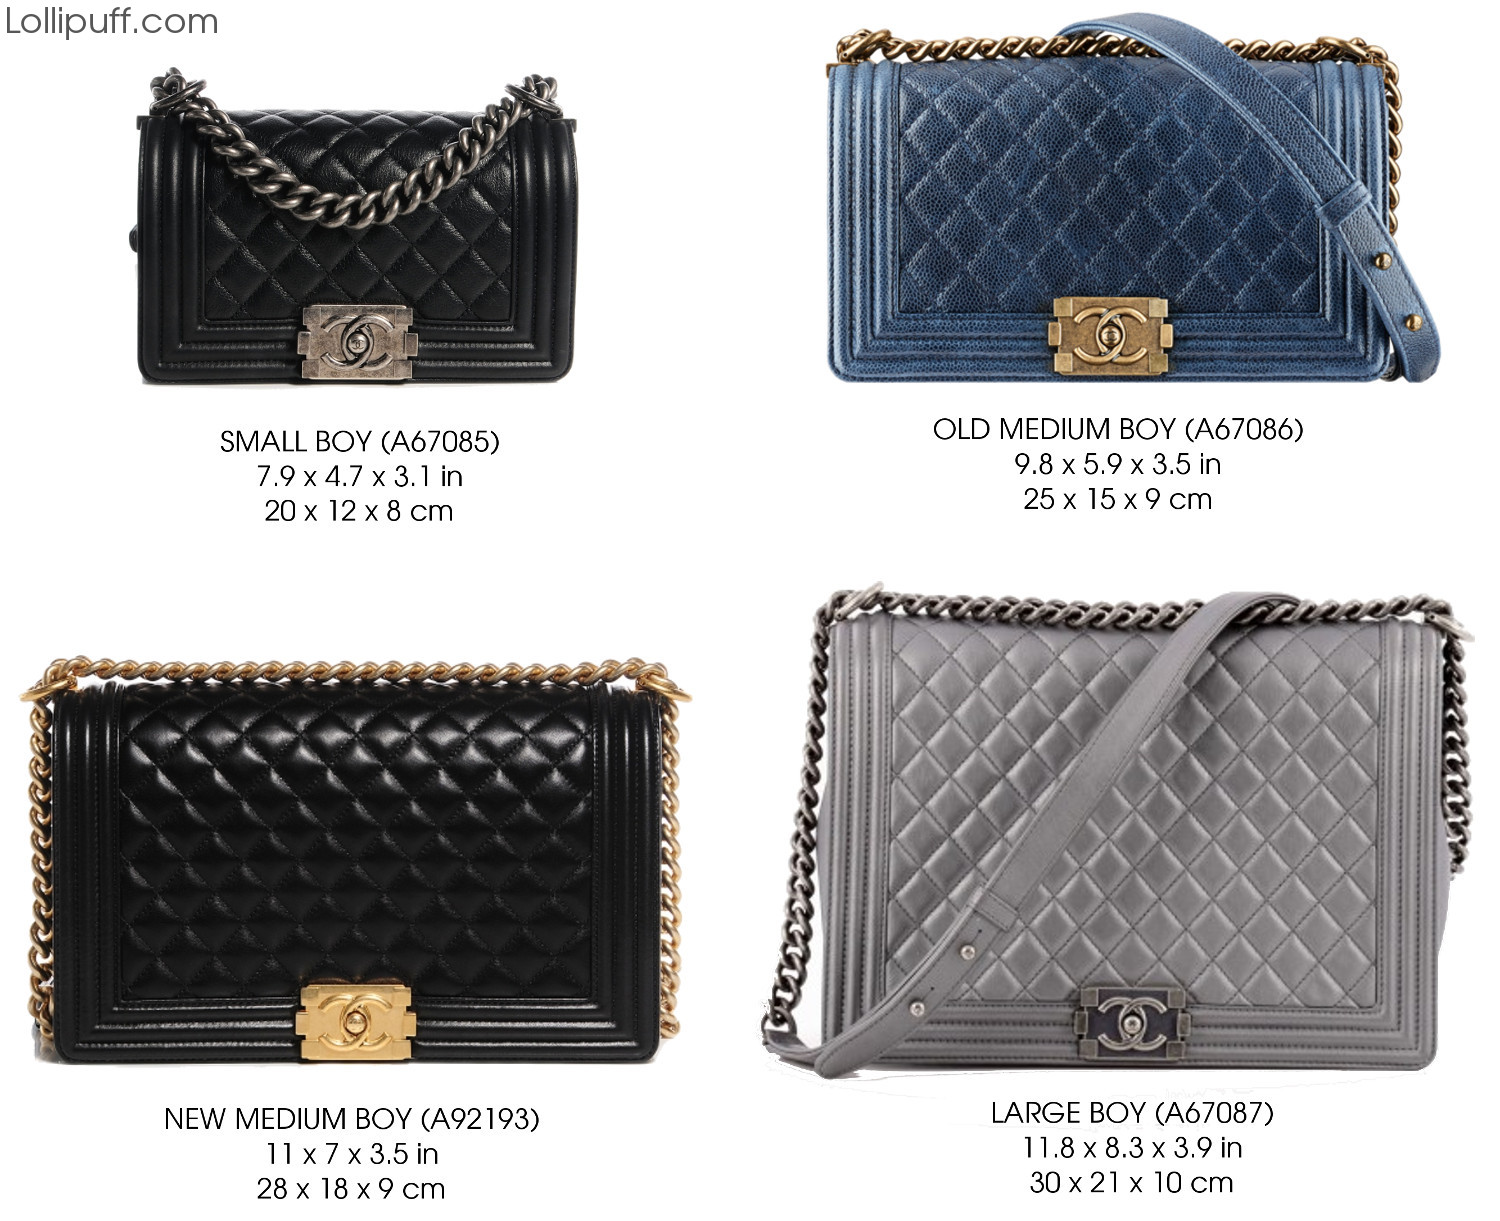 00fea6572d2c Chanel Boy Bag Size Guide | Lollipuff